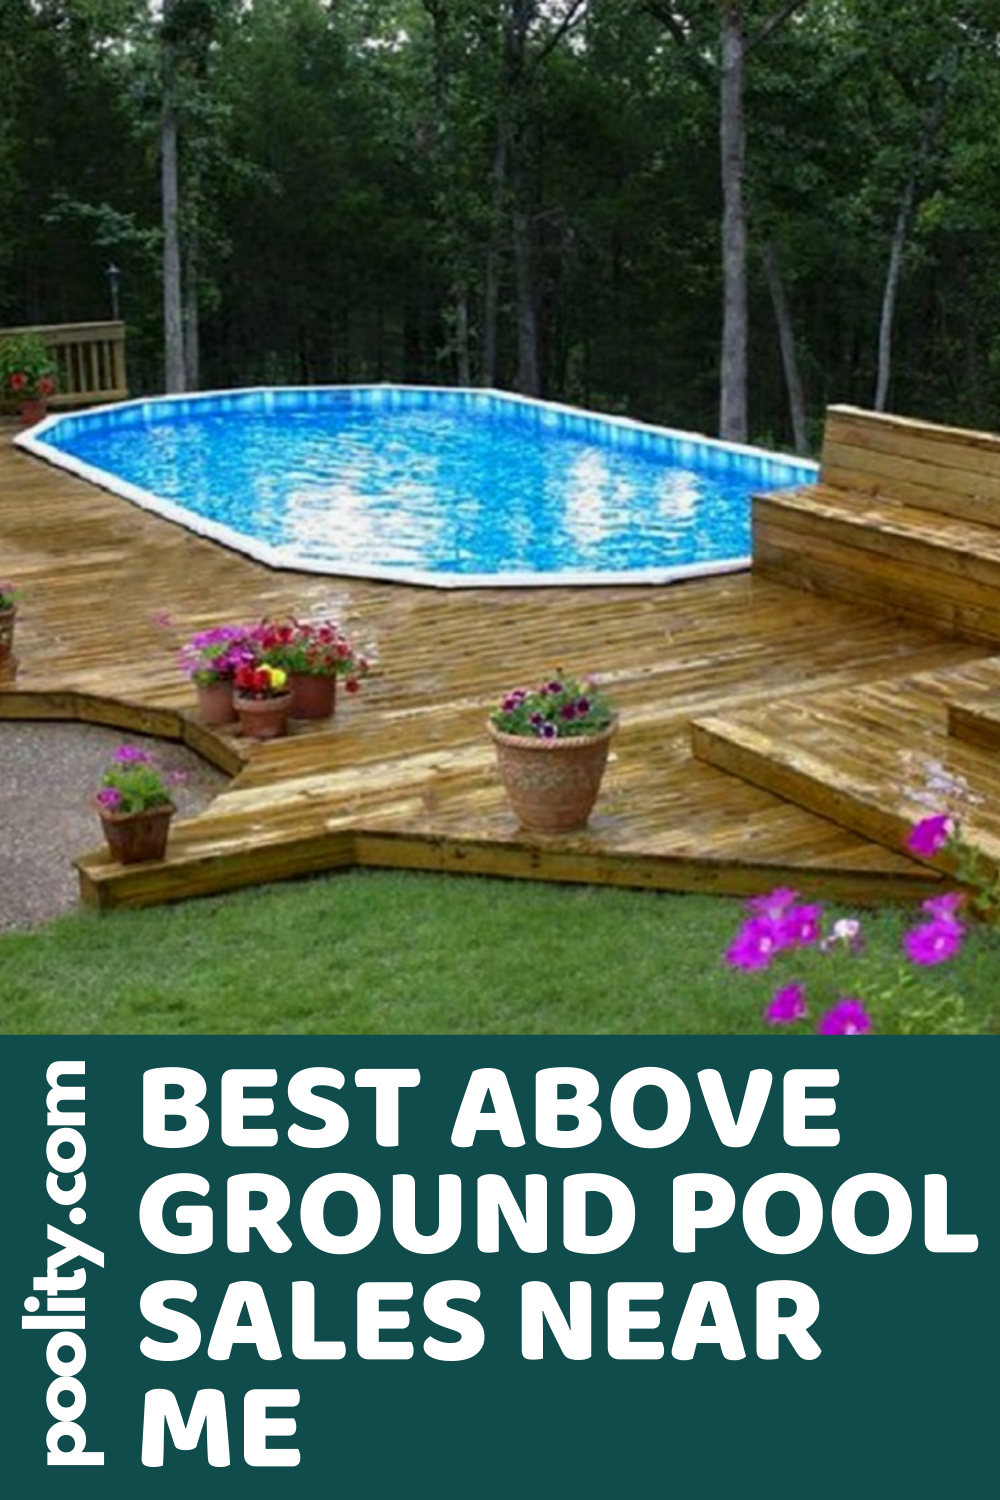 Best Above Ground Pool Sales Near Me In 2020 Above Ground Pool Sale Pool Sales Best Above Ground Pool